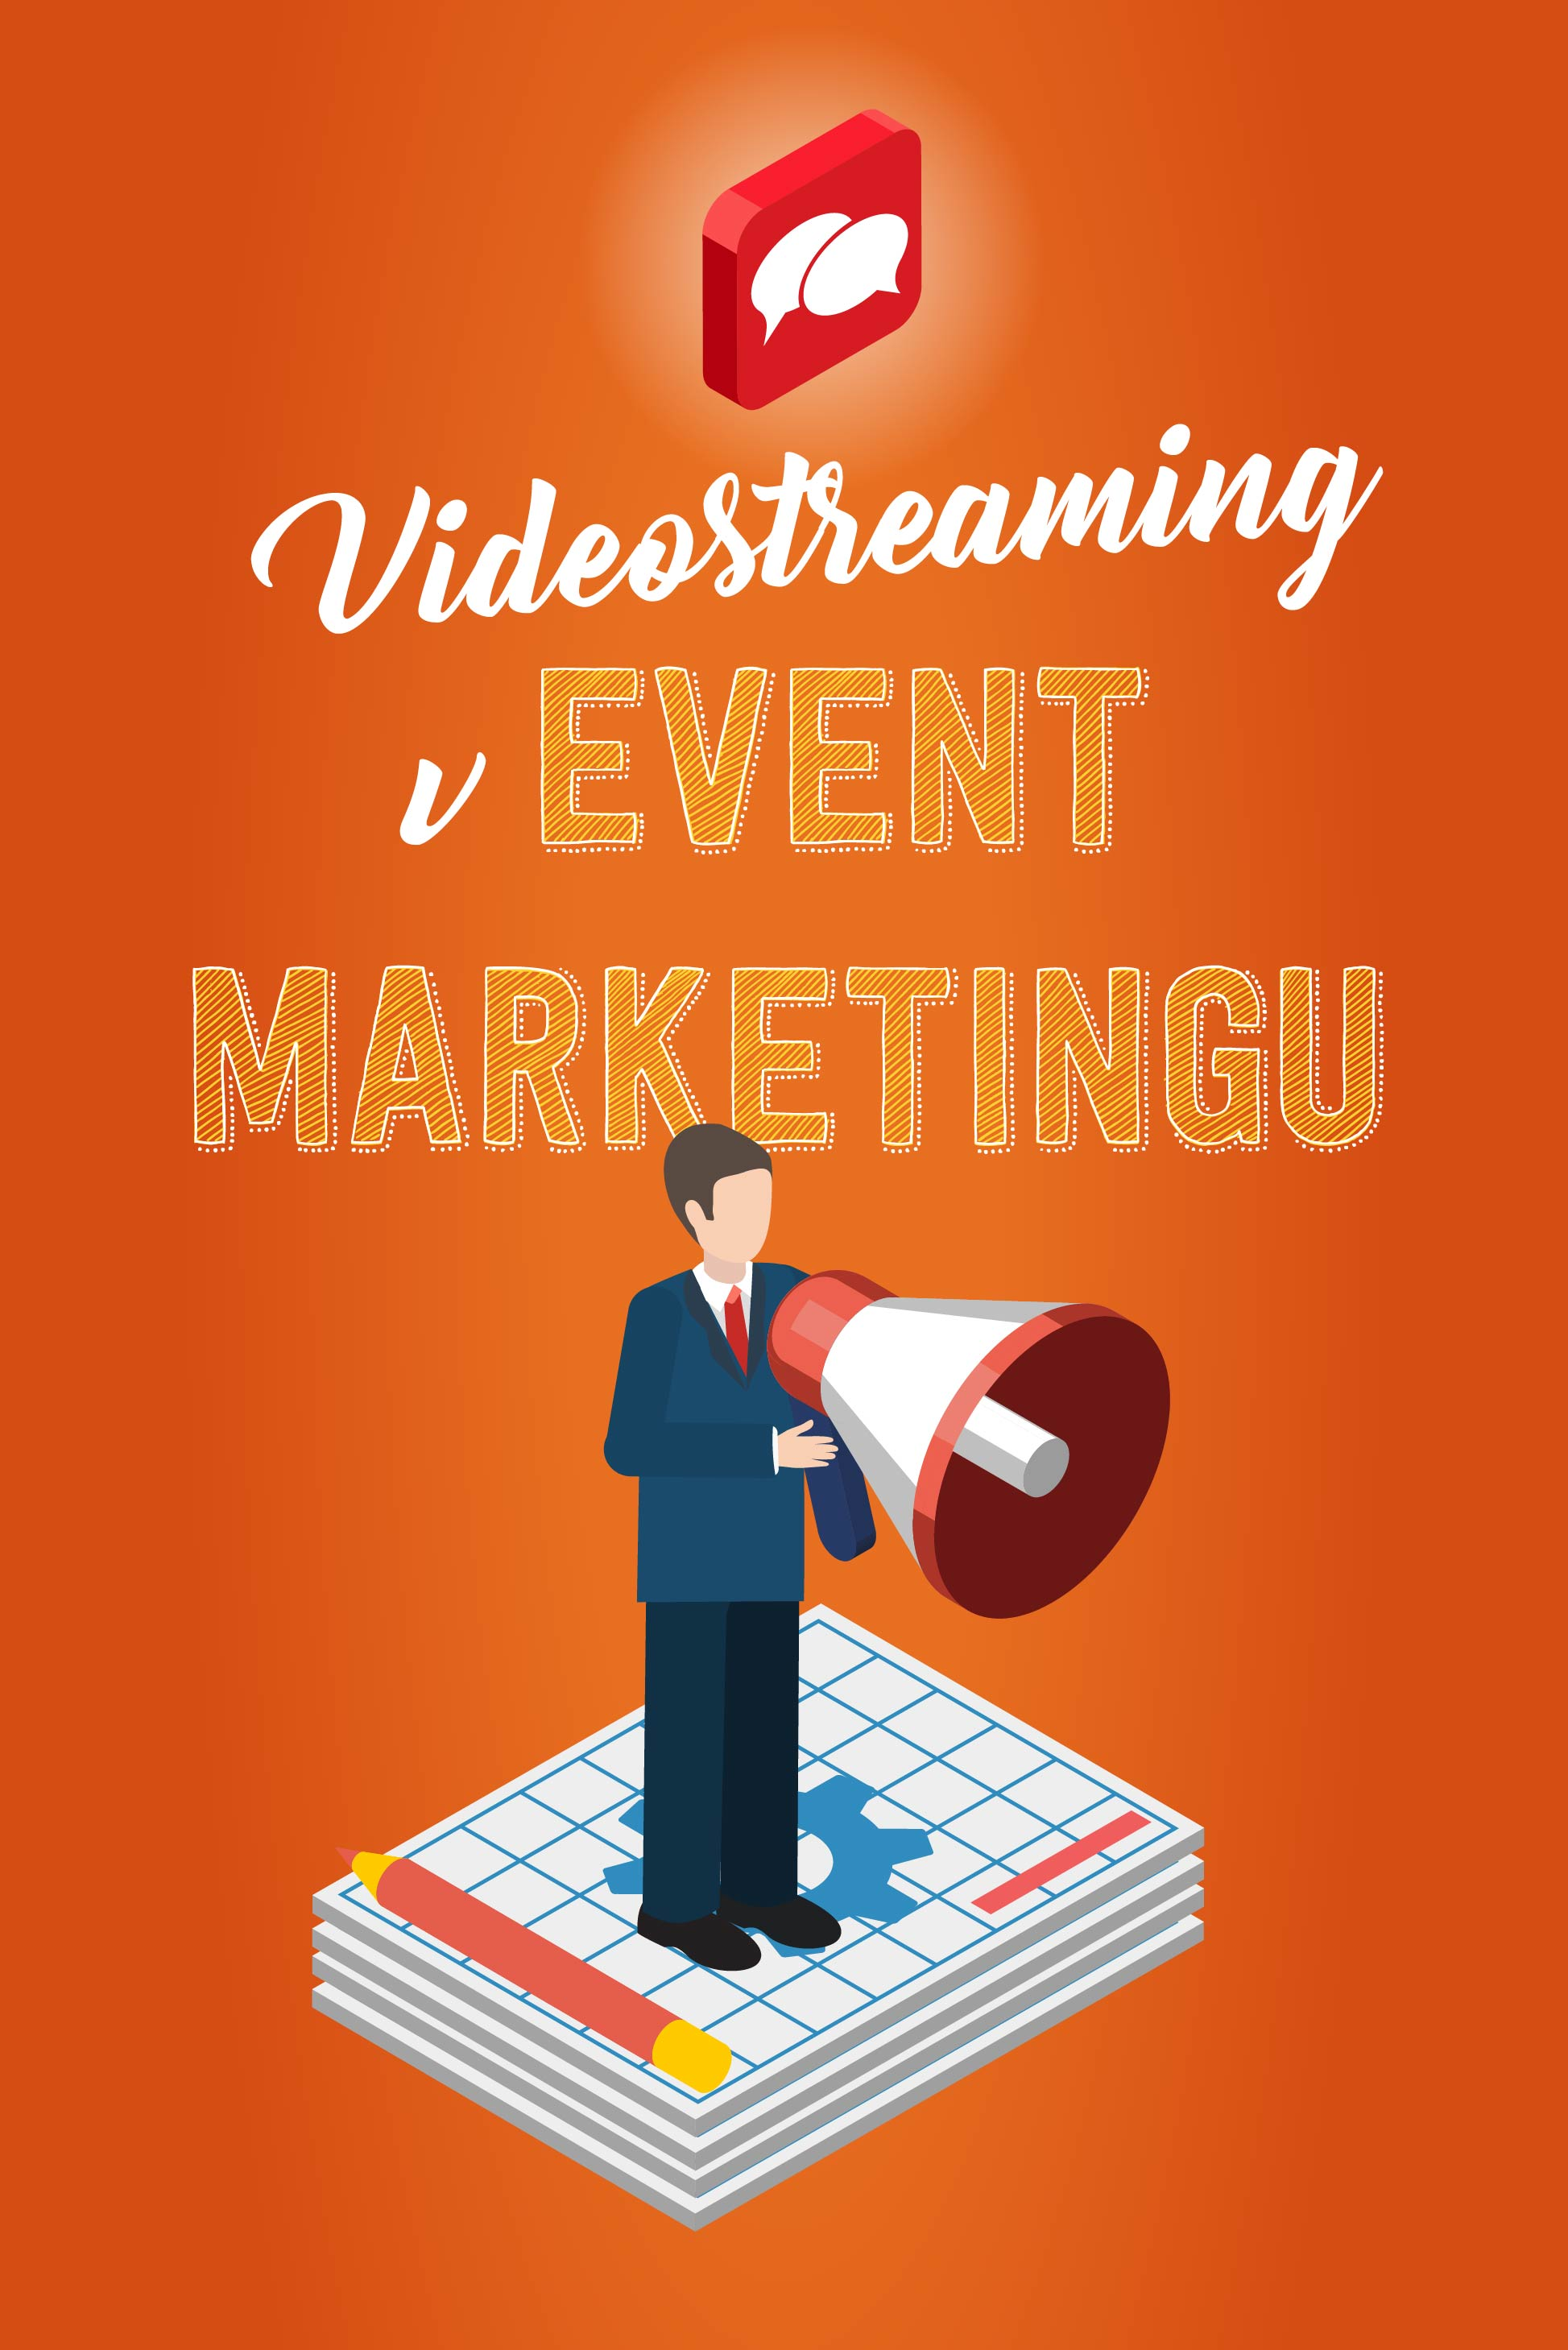 mlv.sk-zivy-prenos-Ako-vyuzit-video-streaming-v-event-marketingu-Video-streaming-v-event-marketingu